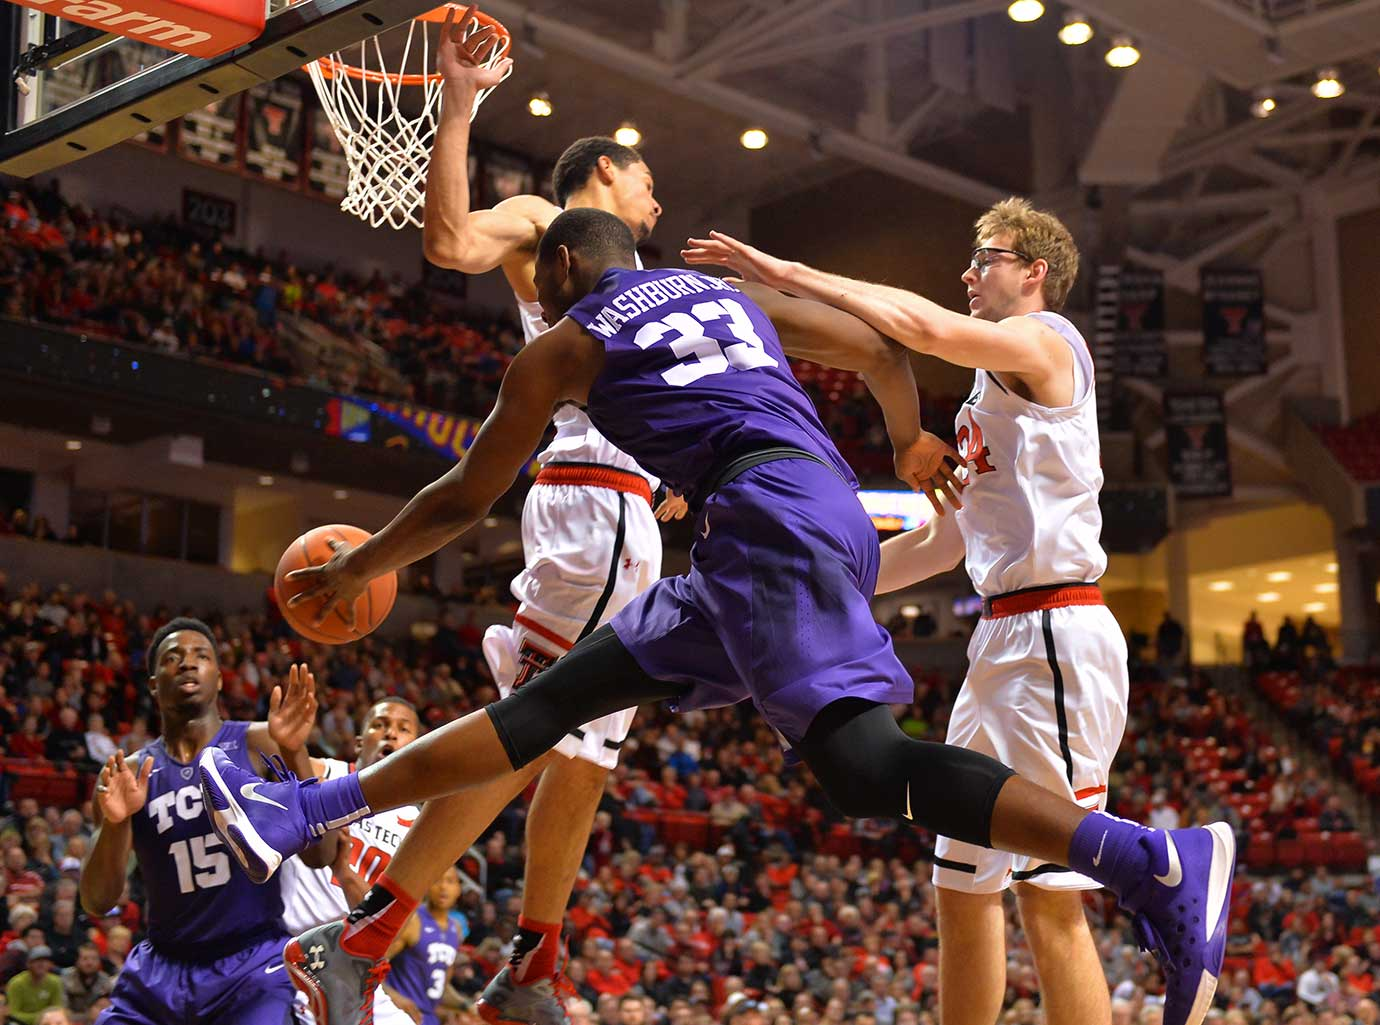 Chris Washburn of the TCU Horned Frogs passes during a game against the Texas Tech Red Raiders.